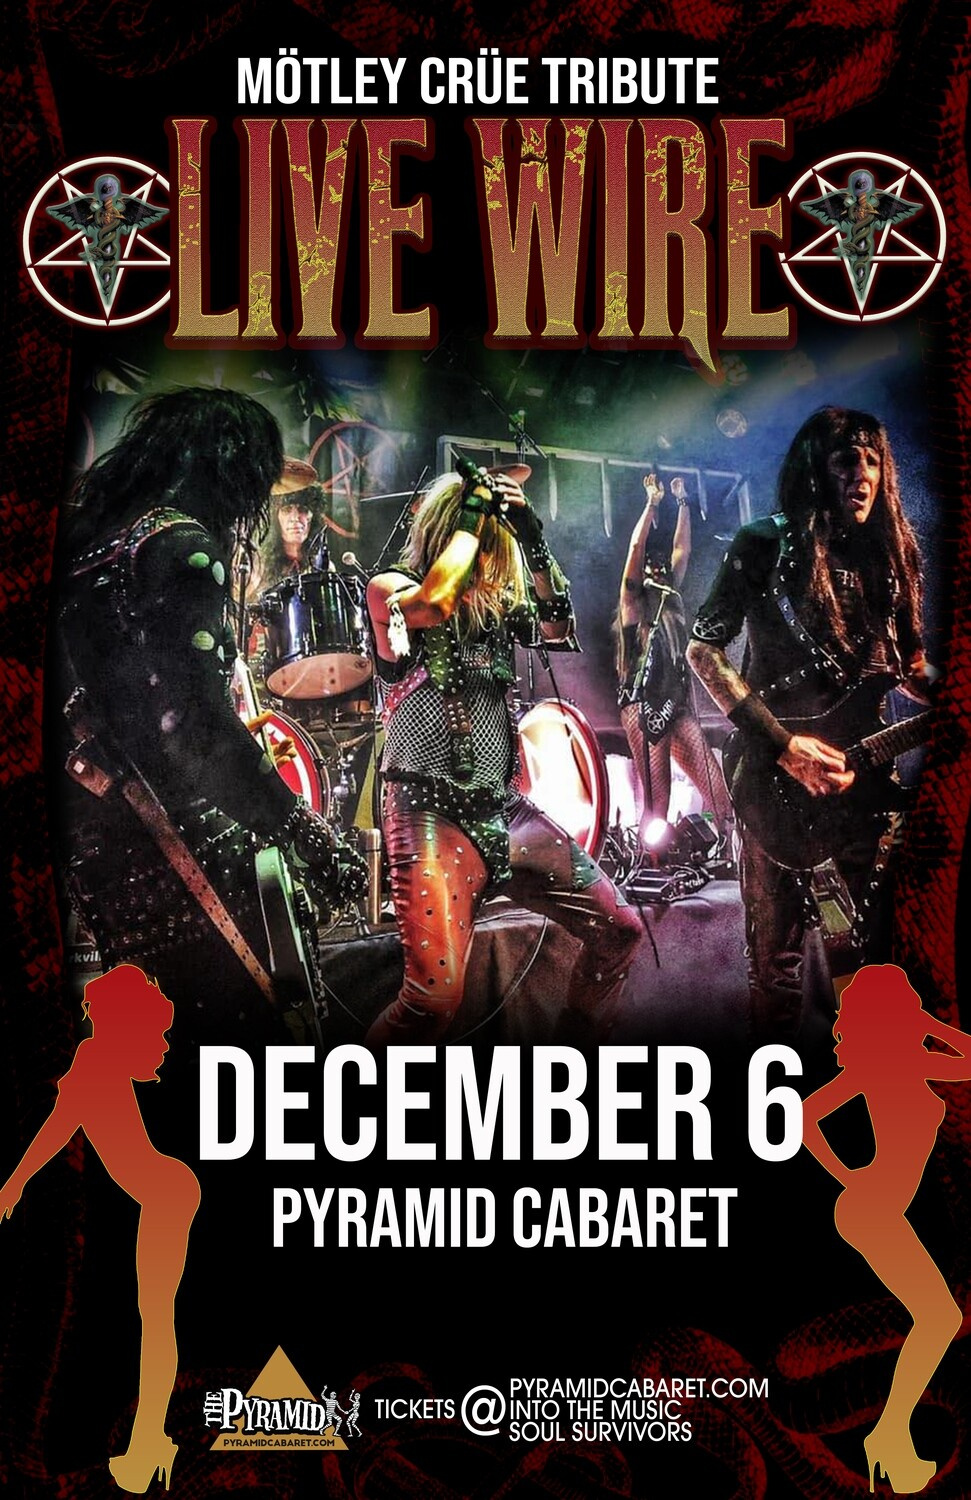 LIVE WIRE: Mötley Crüe Tribute - DEC. 6 - The Pyramid